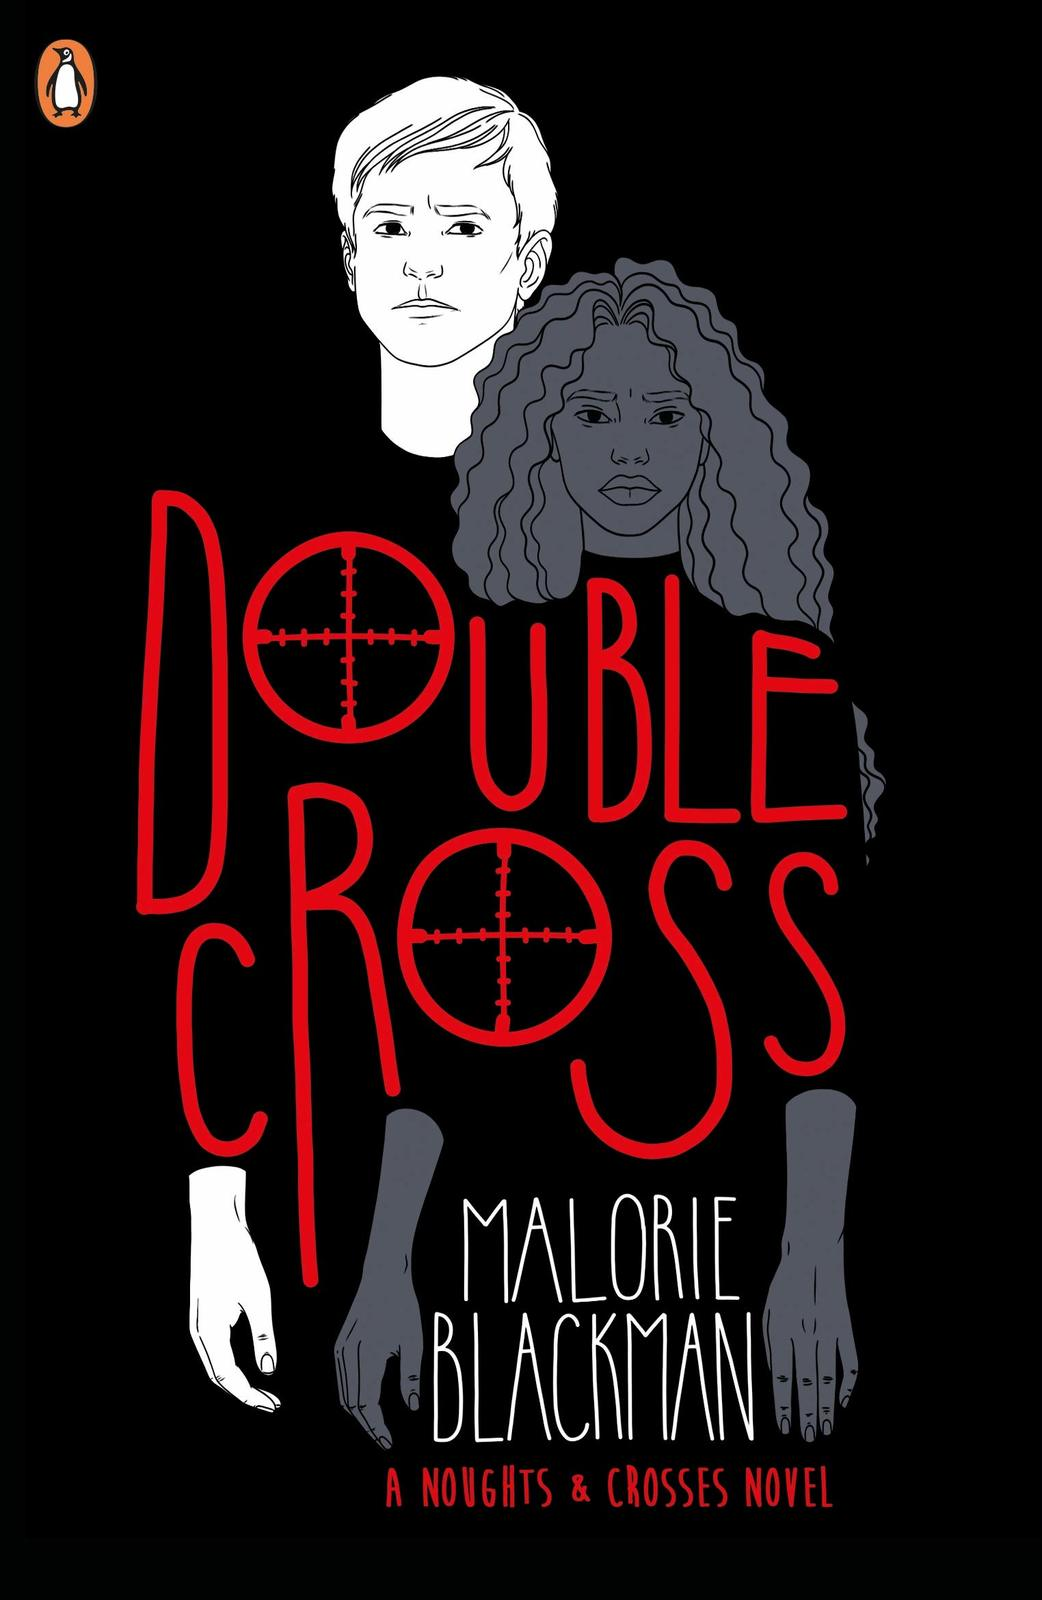 Double Cross by Malorie Blackman image